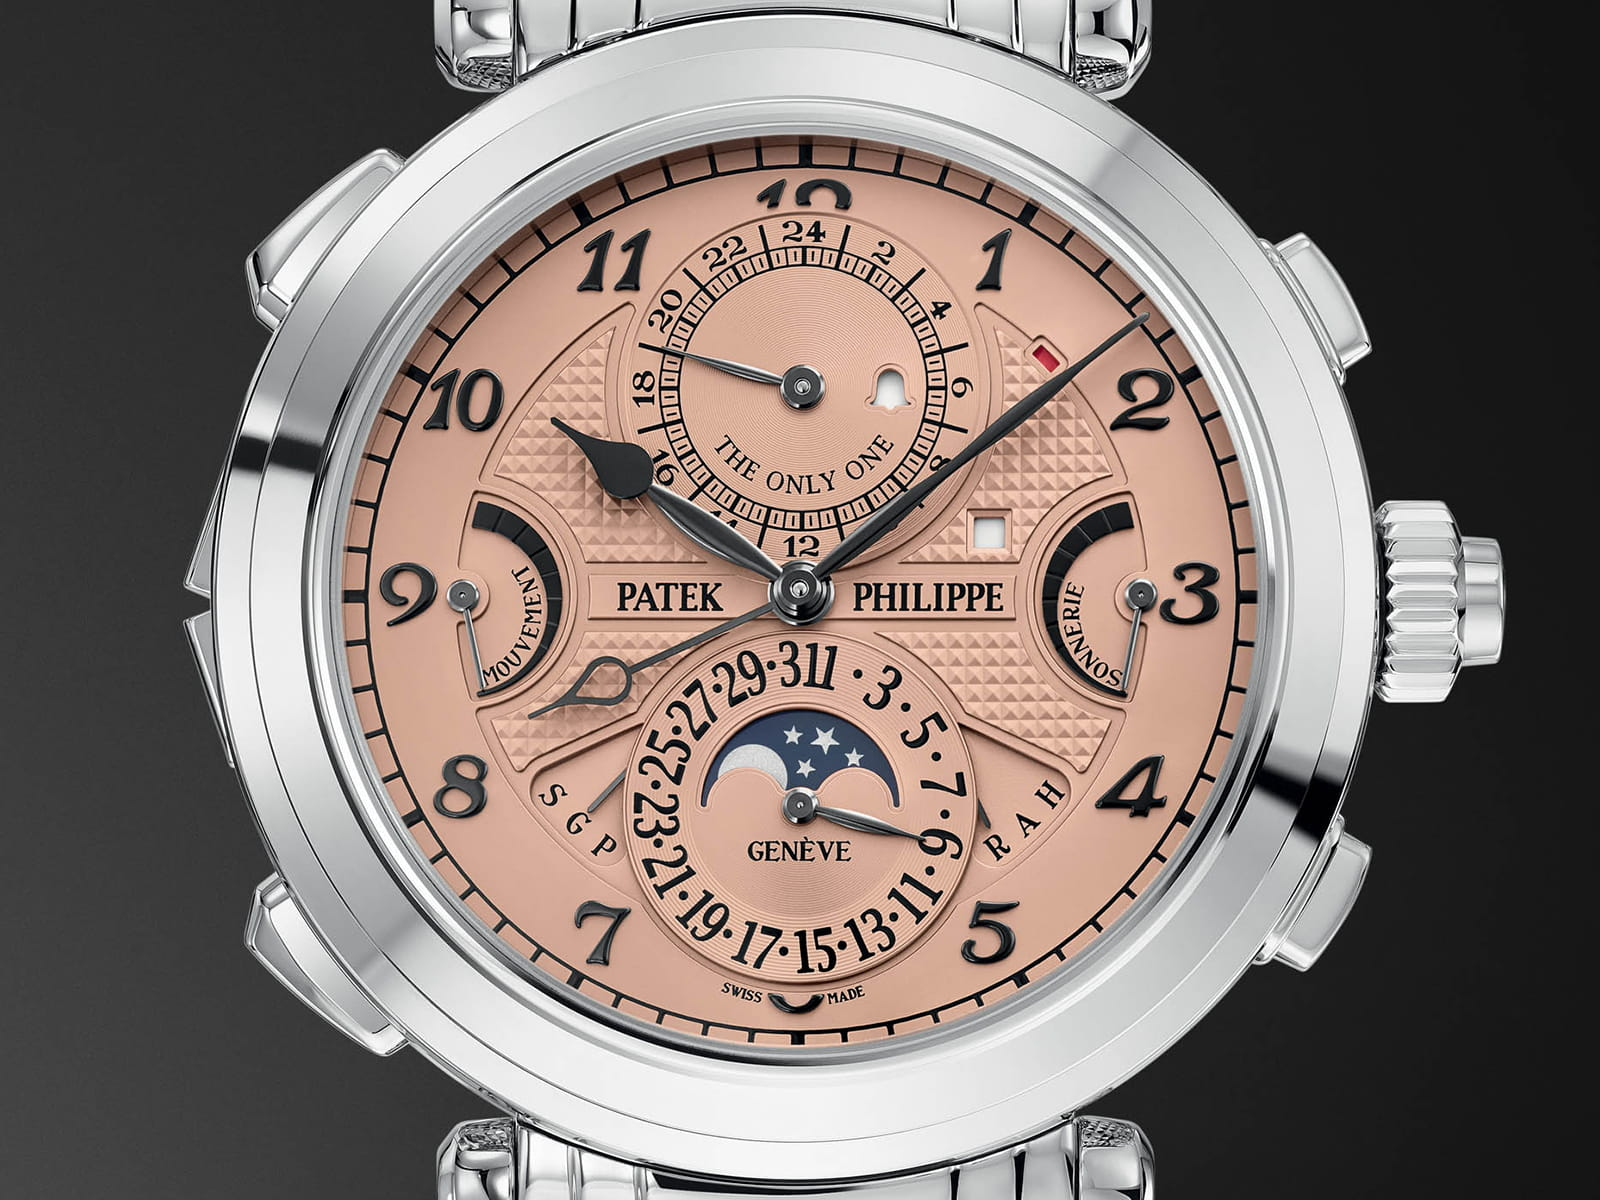 6300a-010-patek-philippe-6300a-steel-grandmaster-chime-only-watch-2019-3.jpg